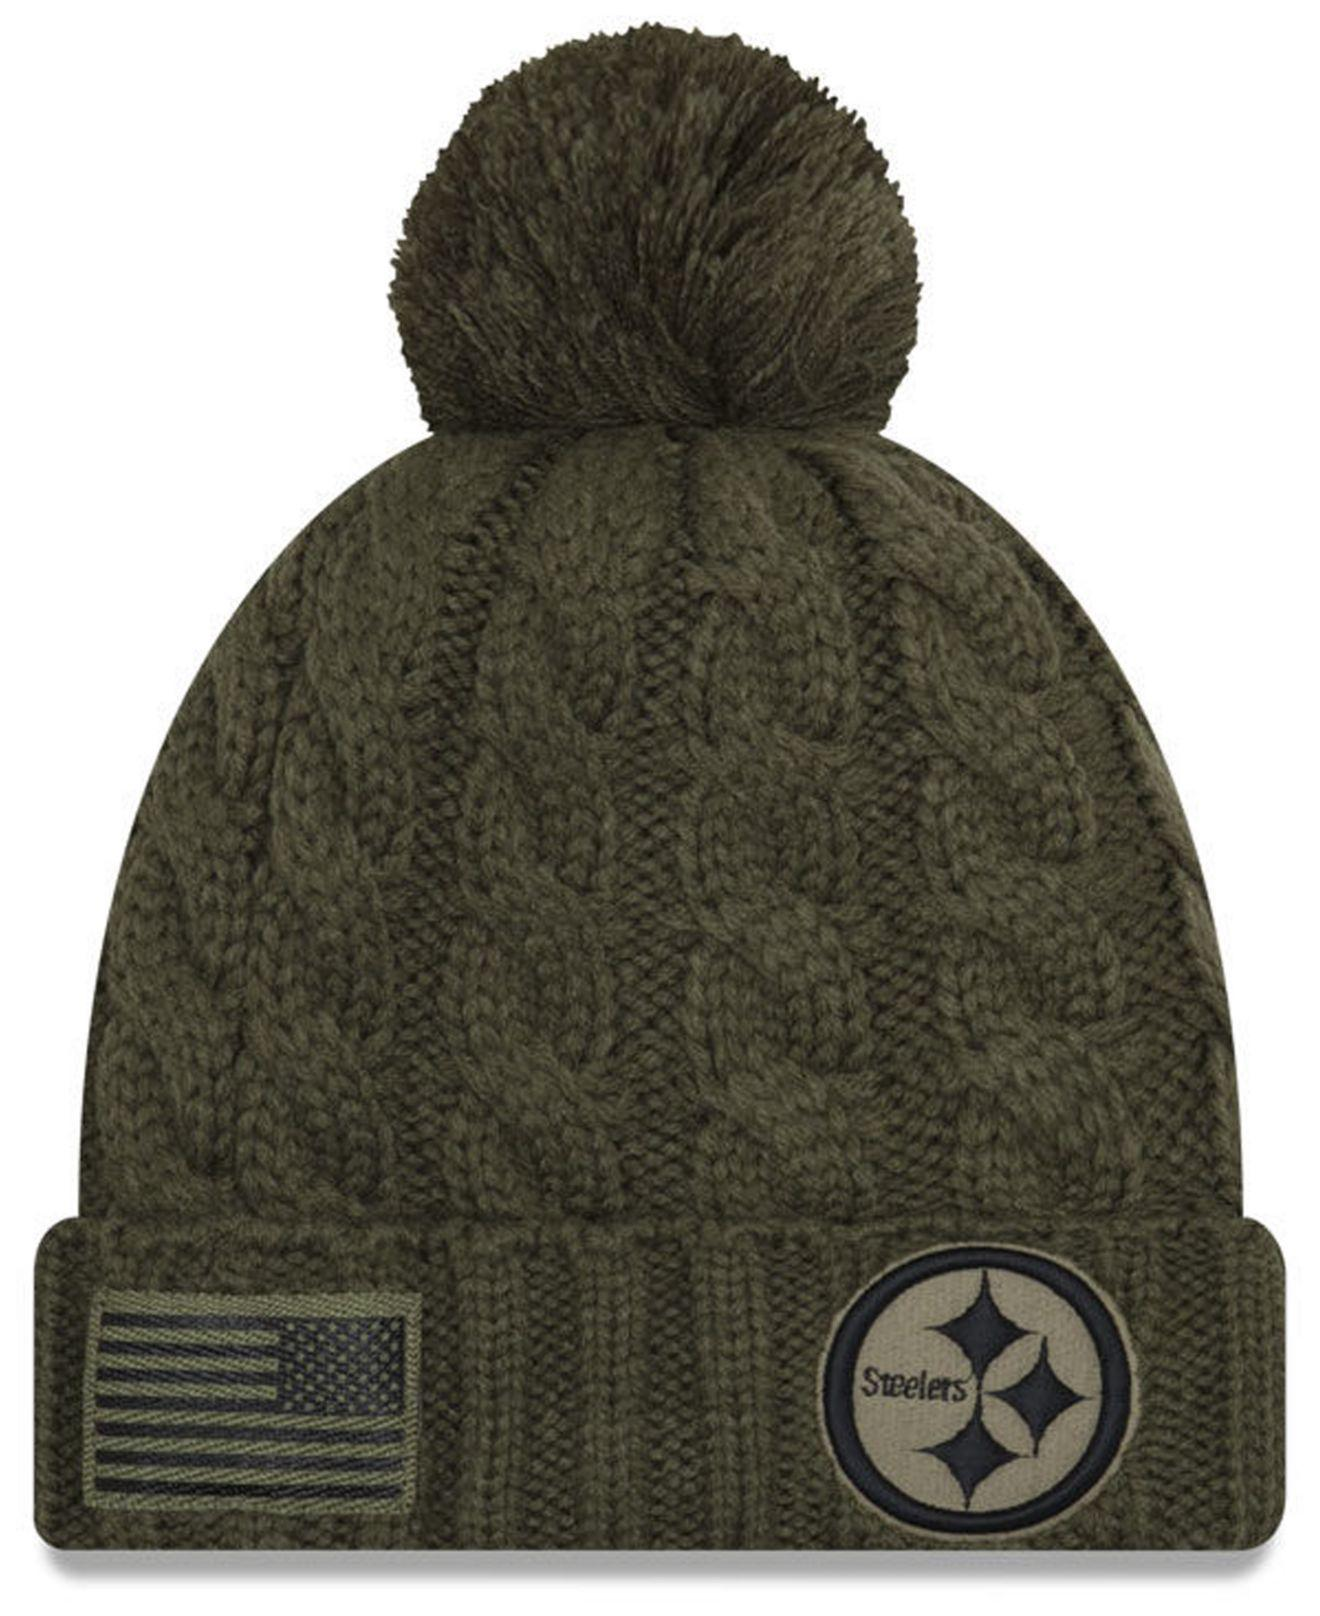 2b4d55e0bae Lyst - KTZ Pittsburgh Steelers Salute To Service Pom Knit Hat in Green